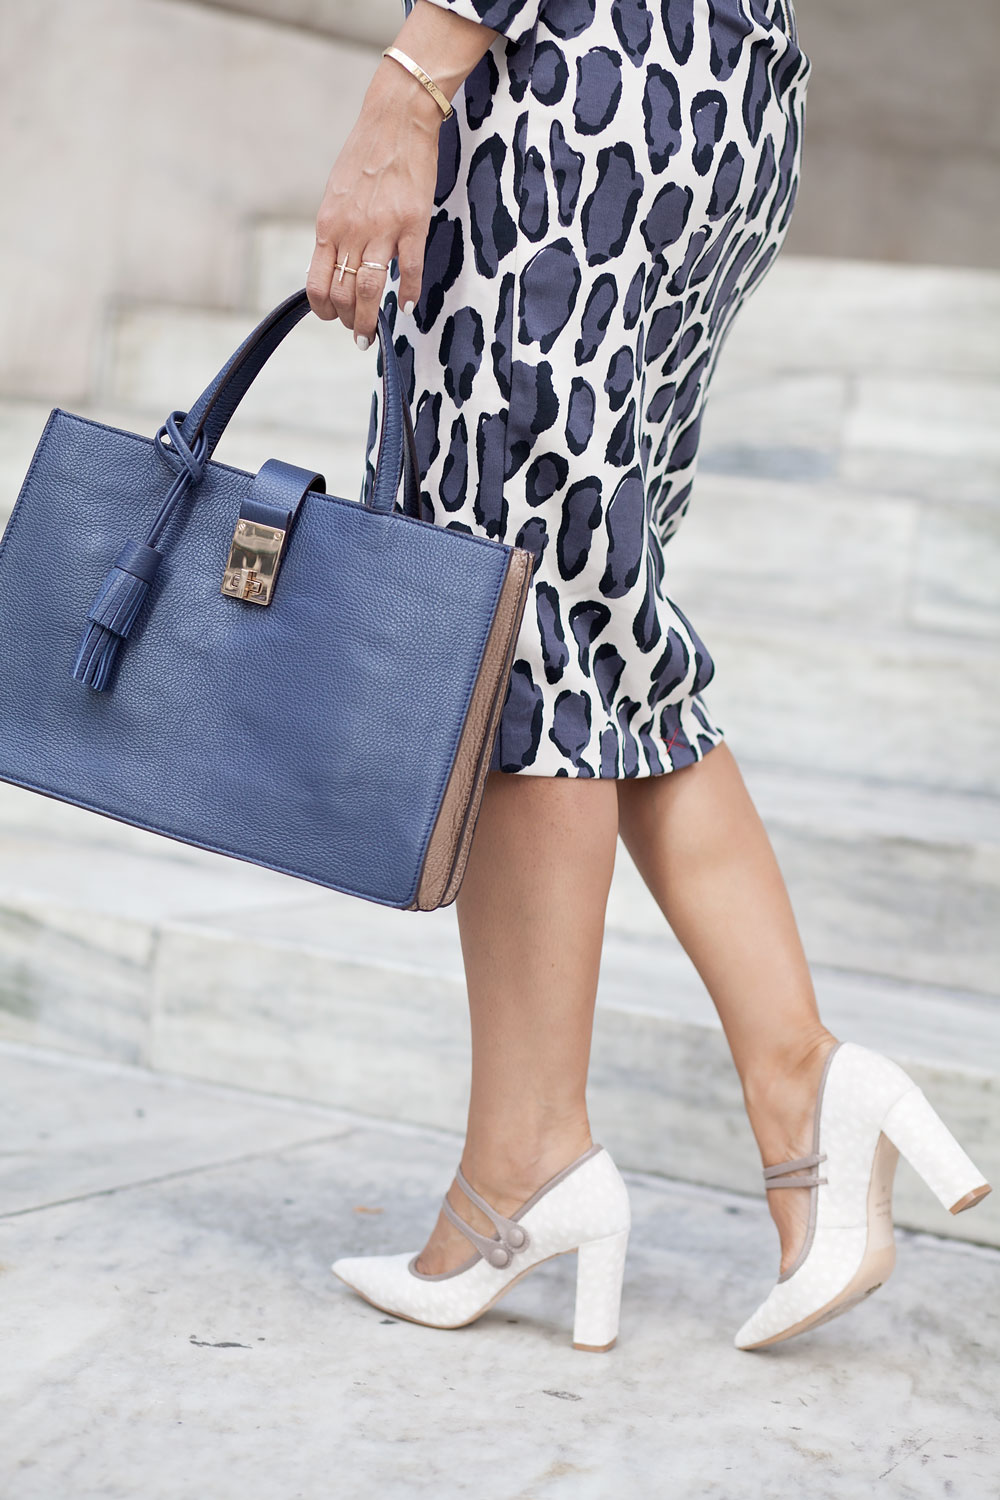 boden-leopard-dress-bodycon-dress-handbag-colorblock-calf-hair-heels-corporate-catwalk-nyfw-what-to-wear-to-work-fashion-blogger-nyc-new-york-city-blogger-3